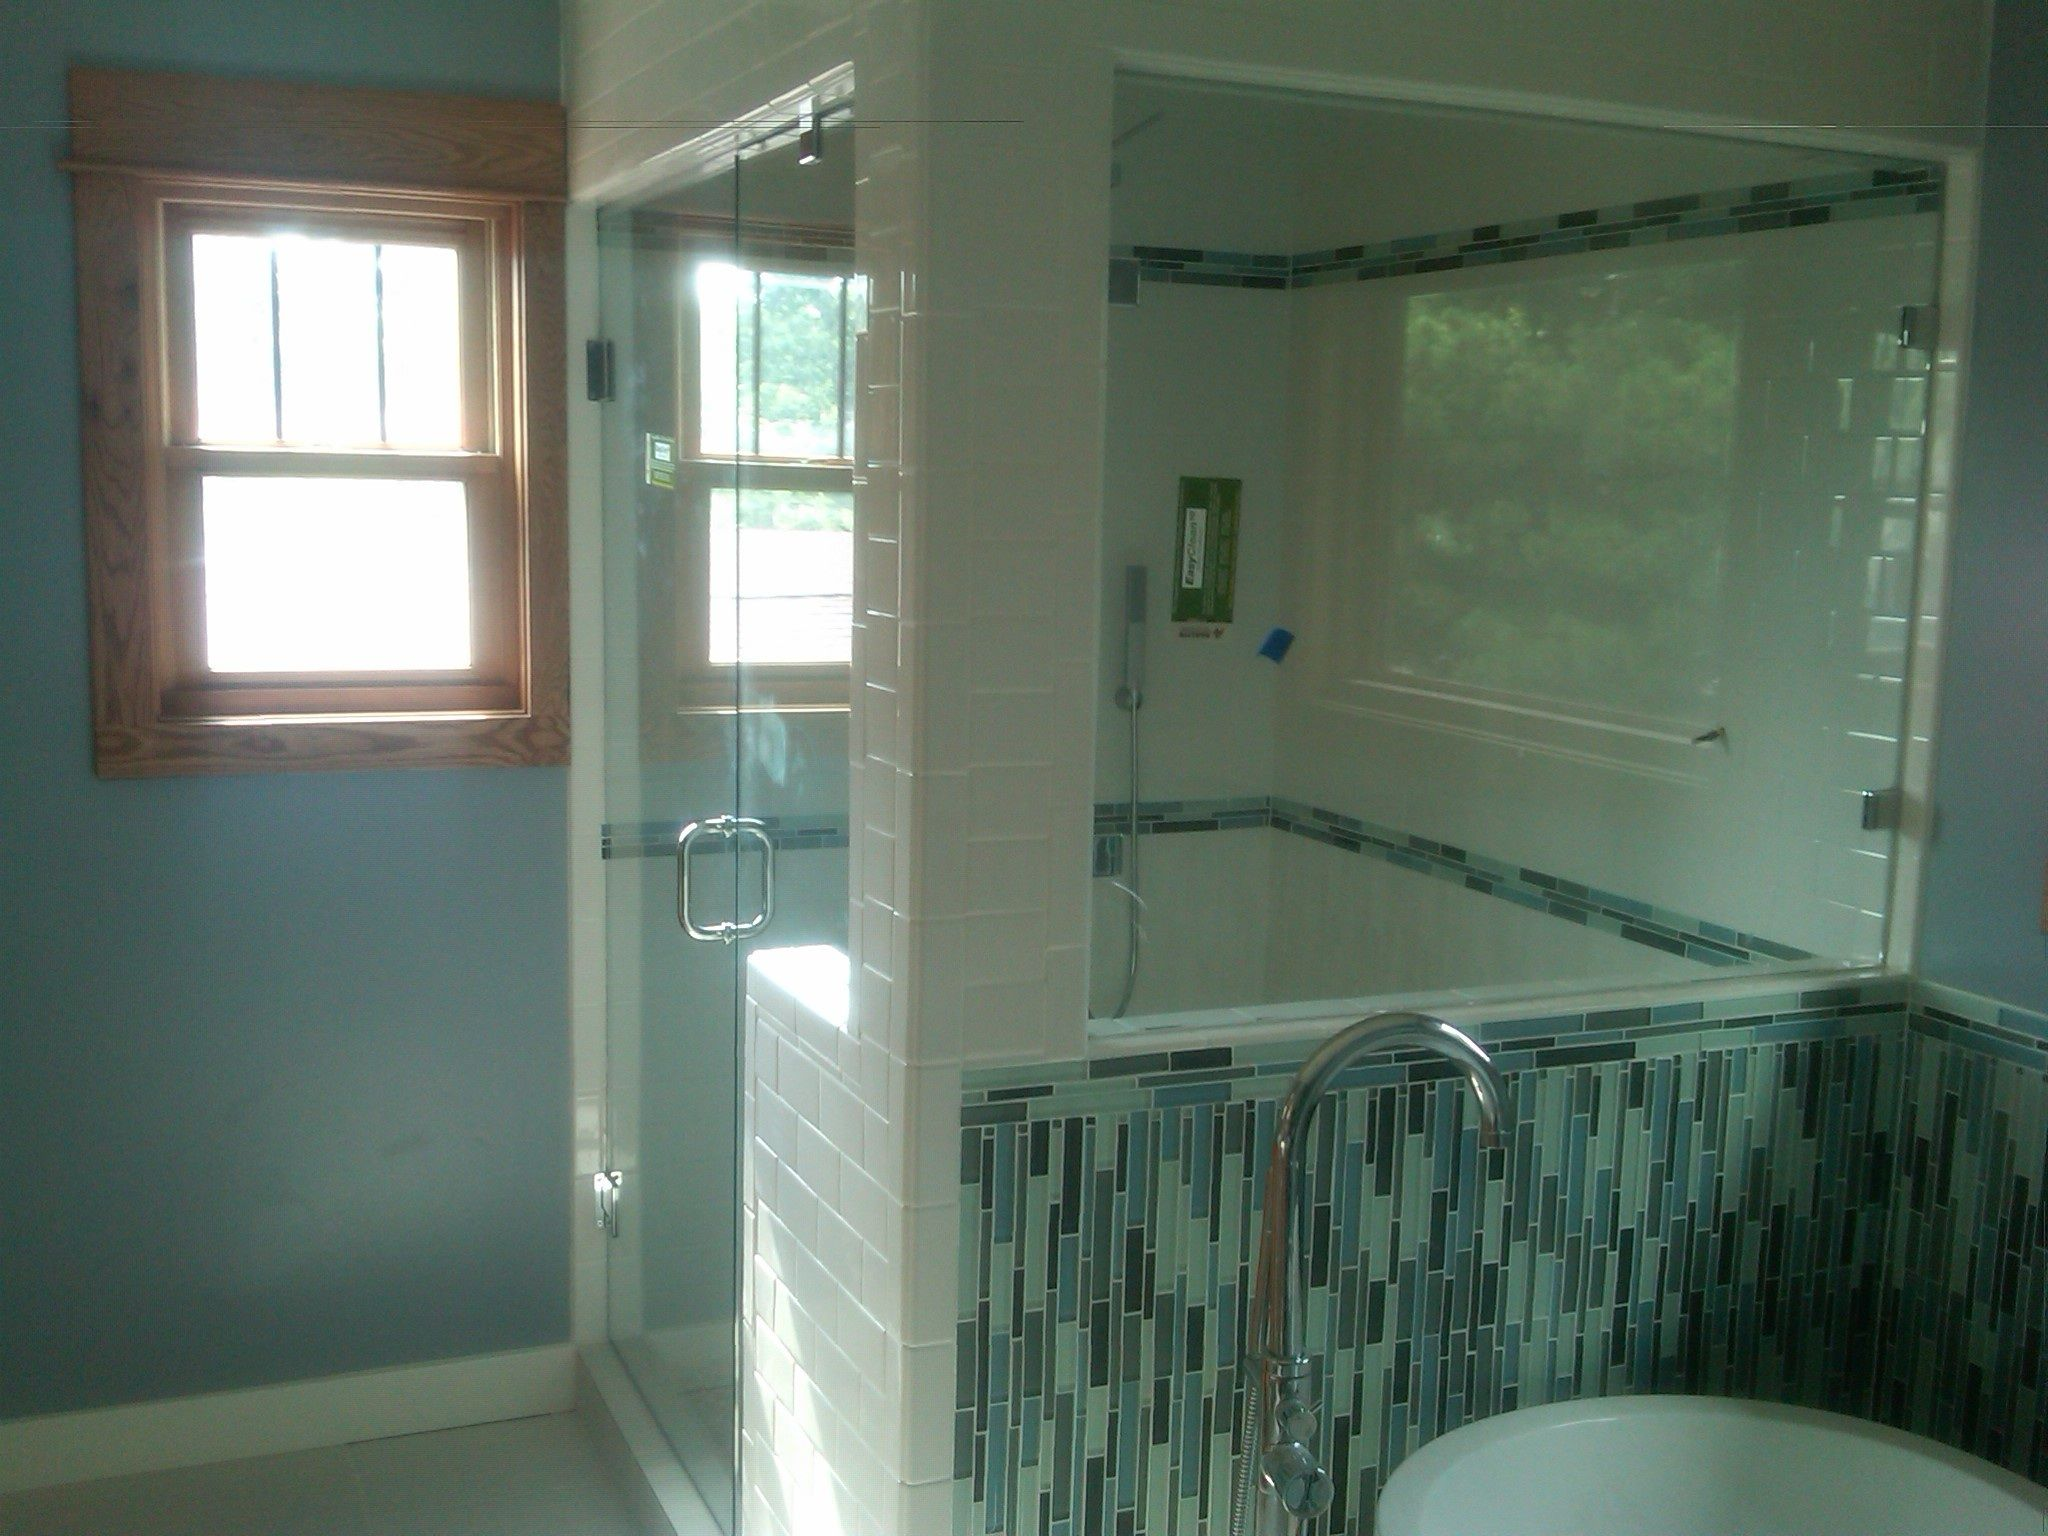 spectacular tile shower design. Spectacular White Guest Custom Steam Shower Kits At Corner Master Bathroom  With Single Toilet And Small Windows Glass Design Ideas bathrooms woth corner windows